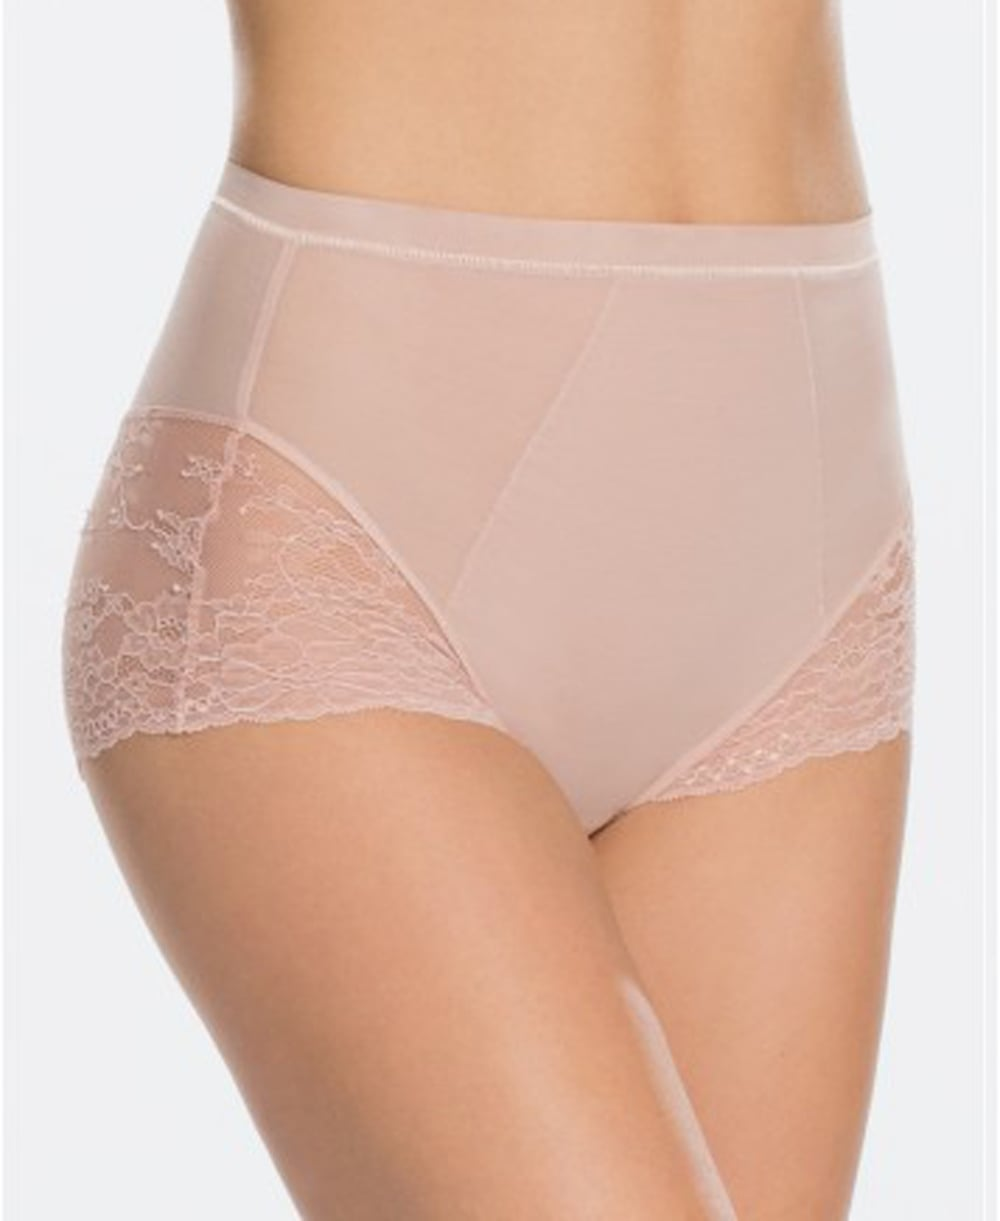 e3dd83a1e7b Spanx Spotlight On Lace Brief - Shapewear from luxury-legs.com UK